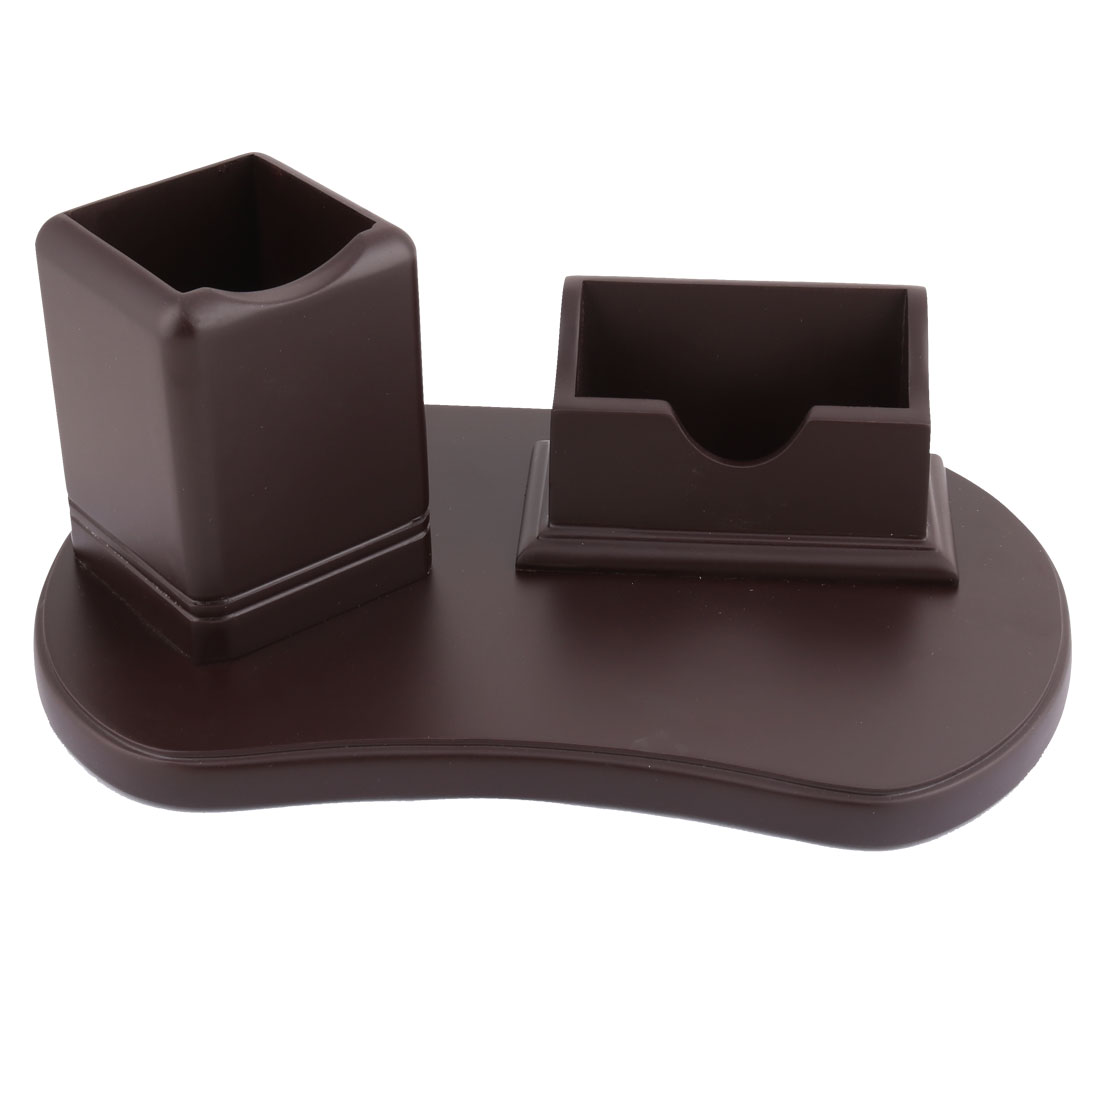 Desk Orangizer Wooden Storage Stationery Business Card Ruler Pen Holder Chocolate Color